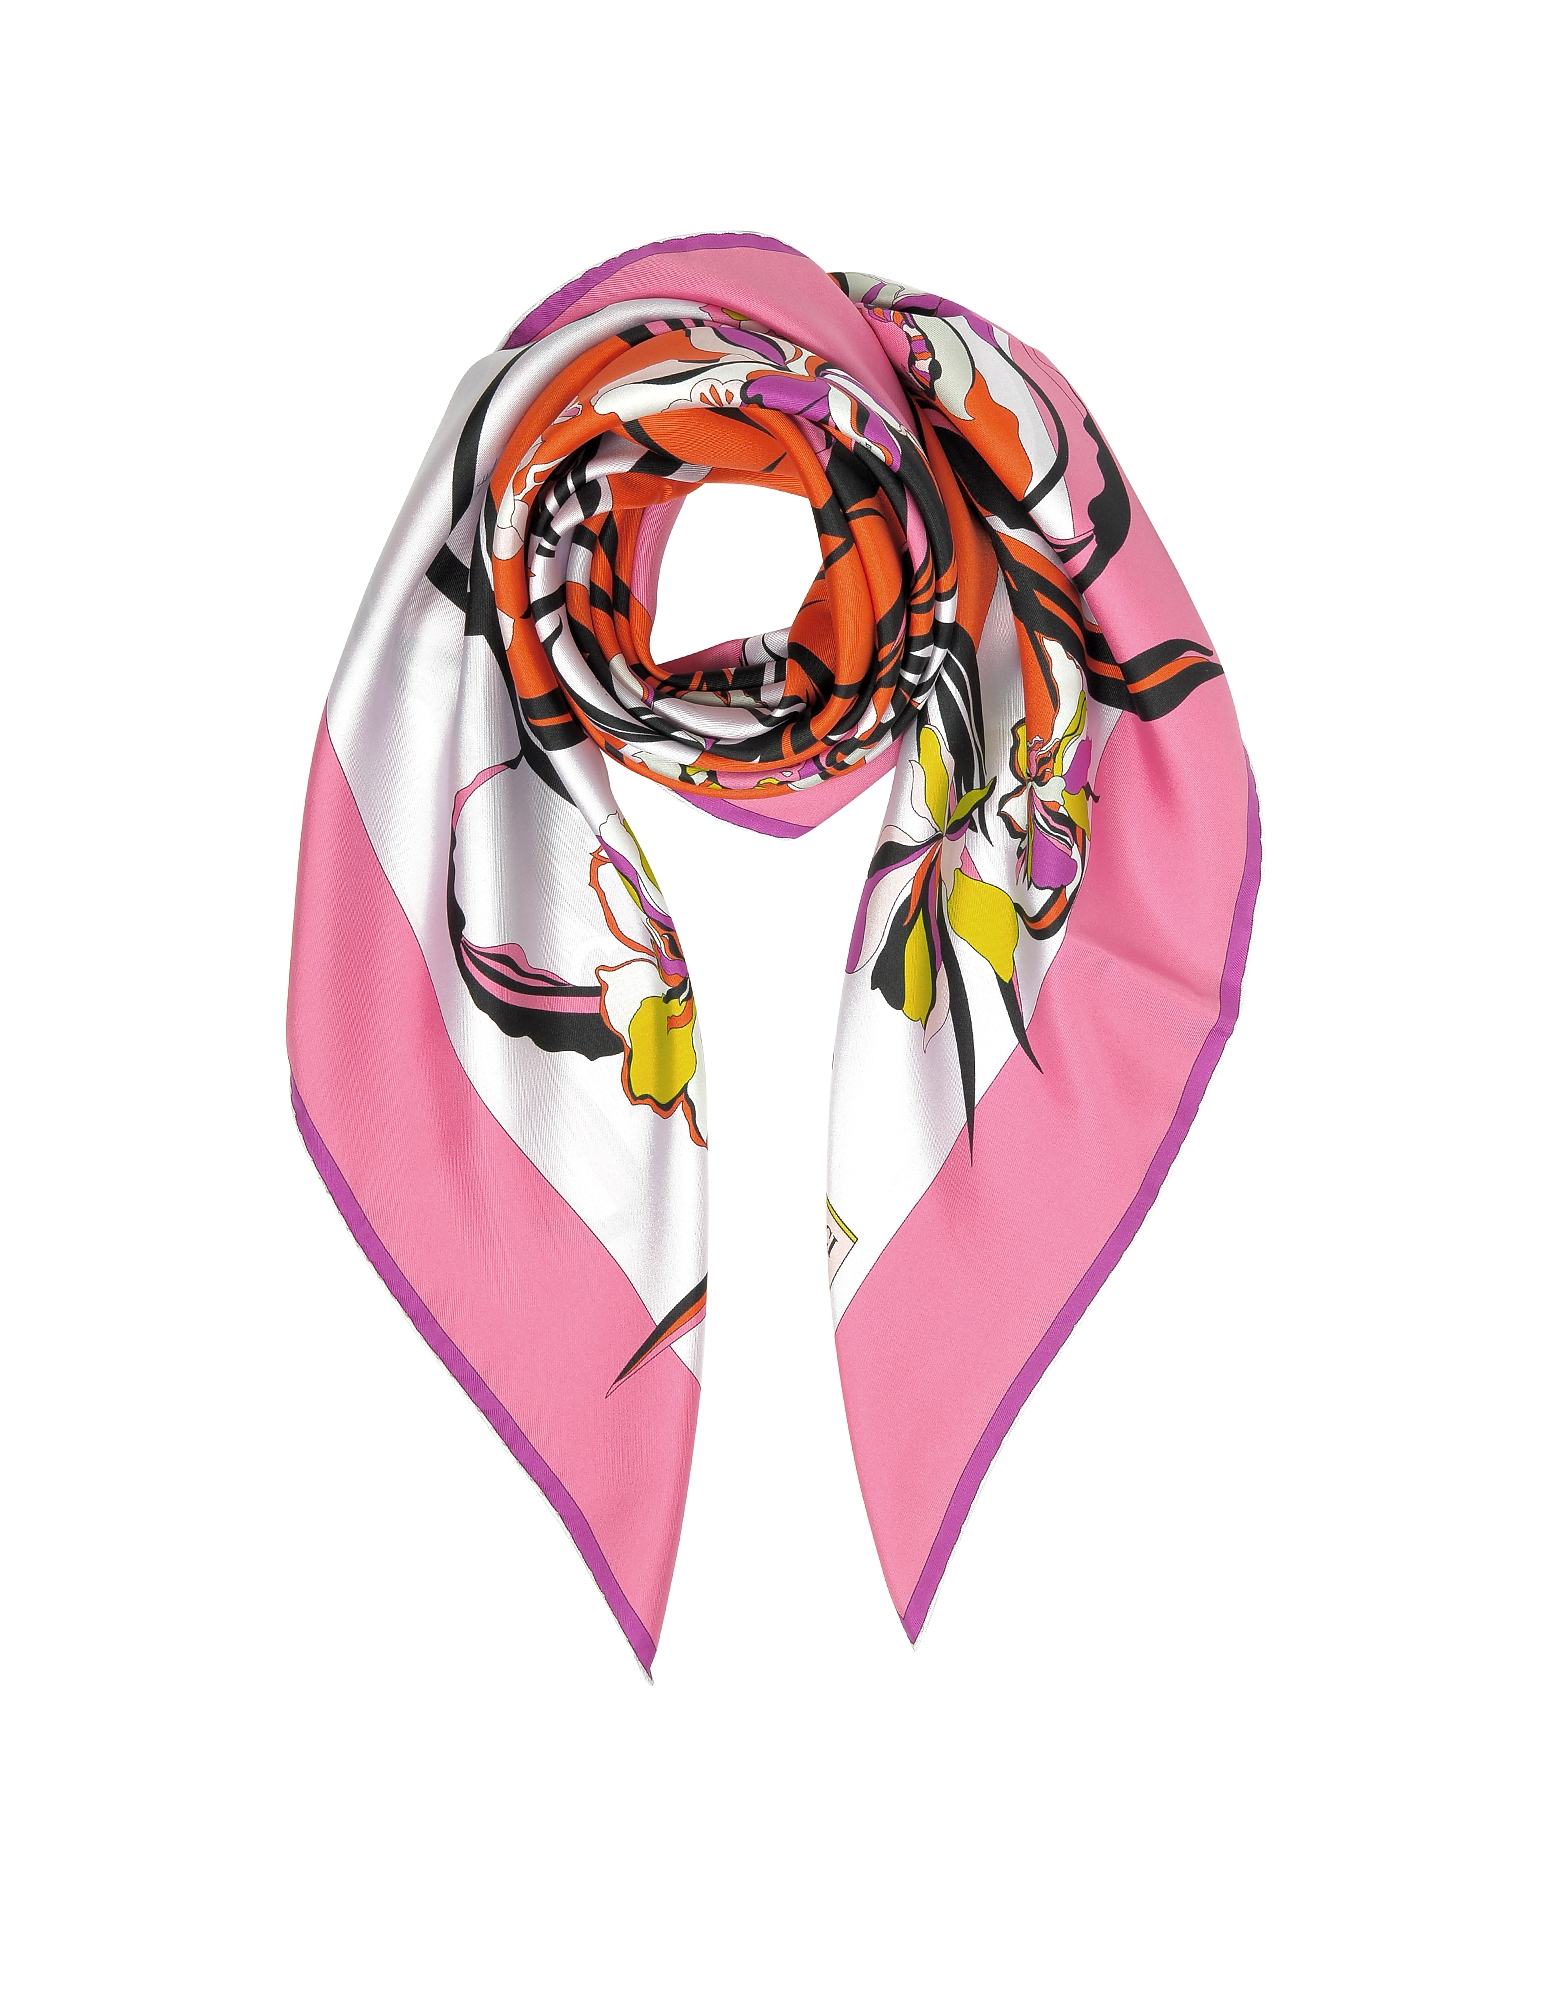 Foulard in Seta Multicolor Stampa Hanbury